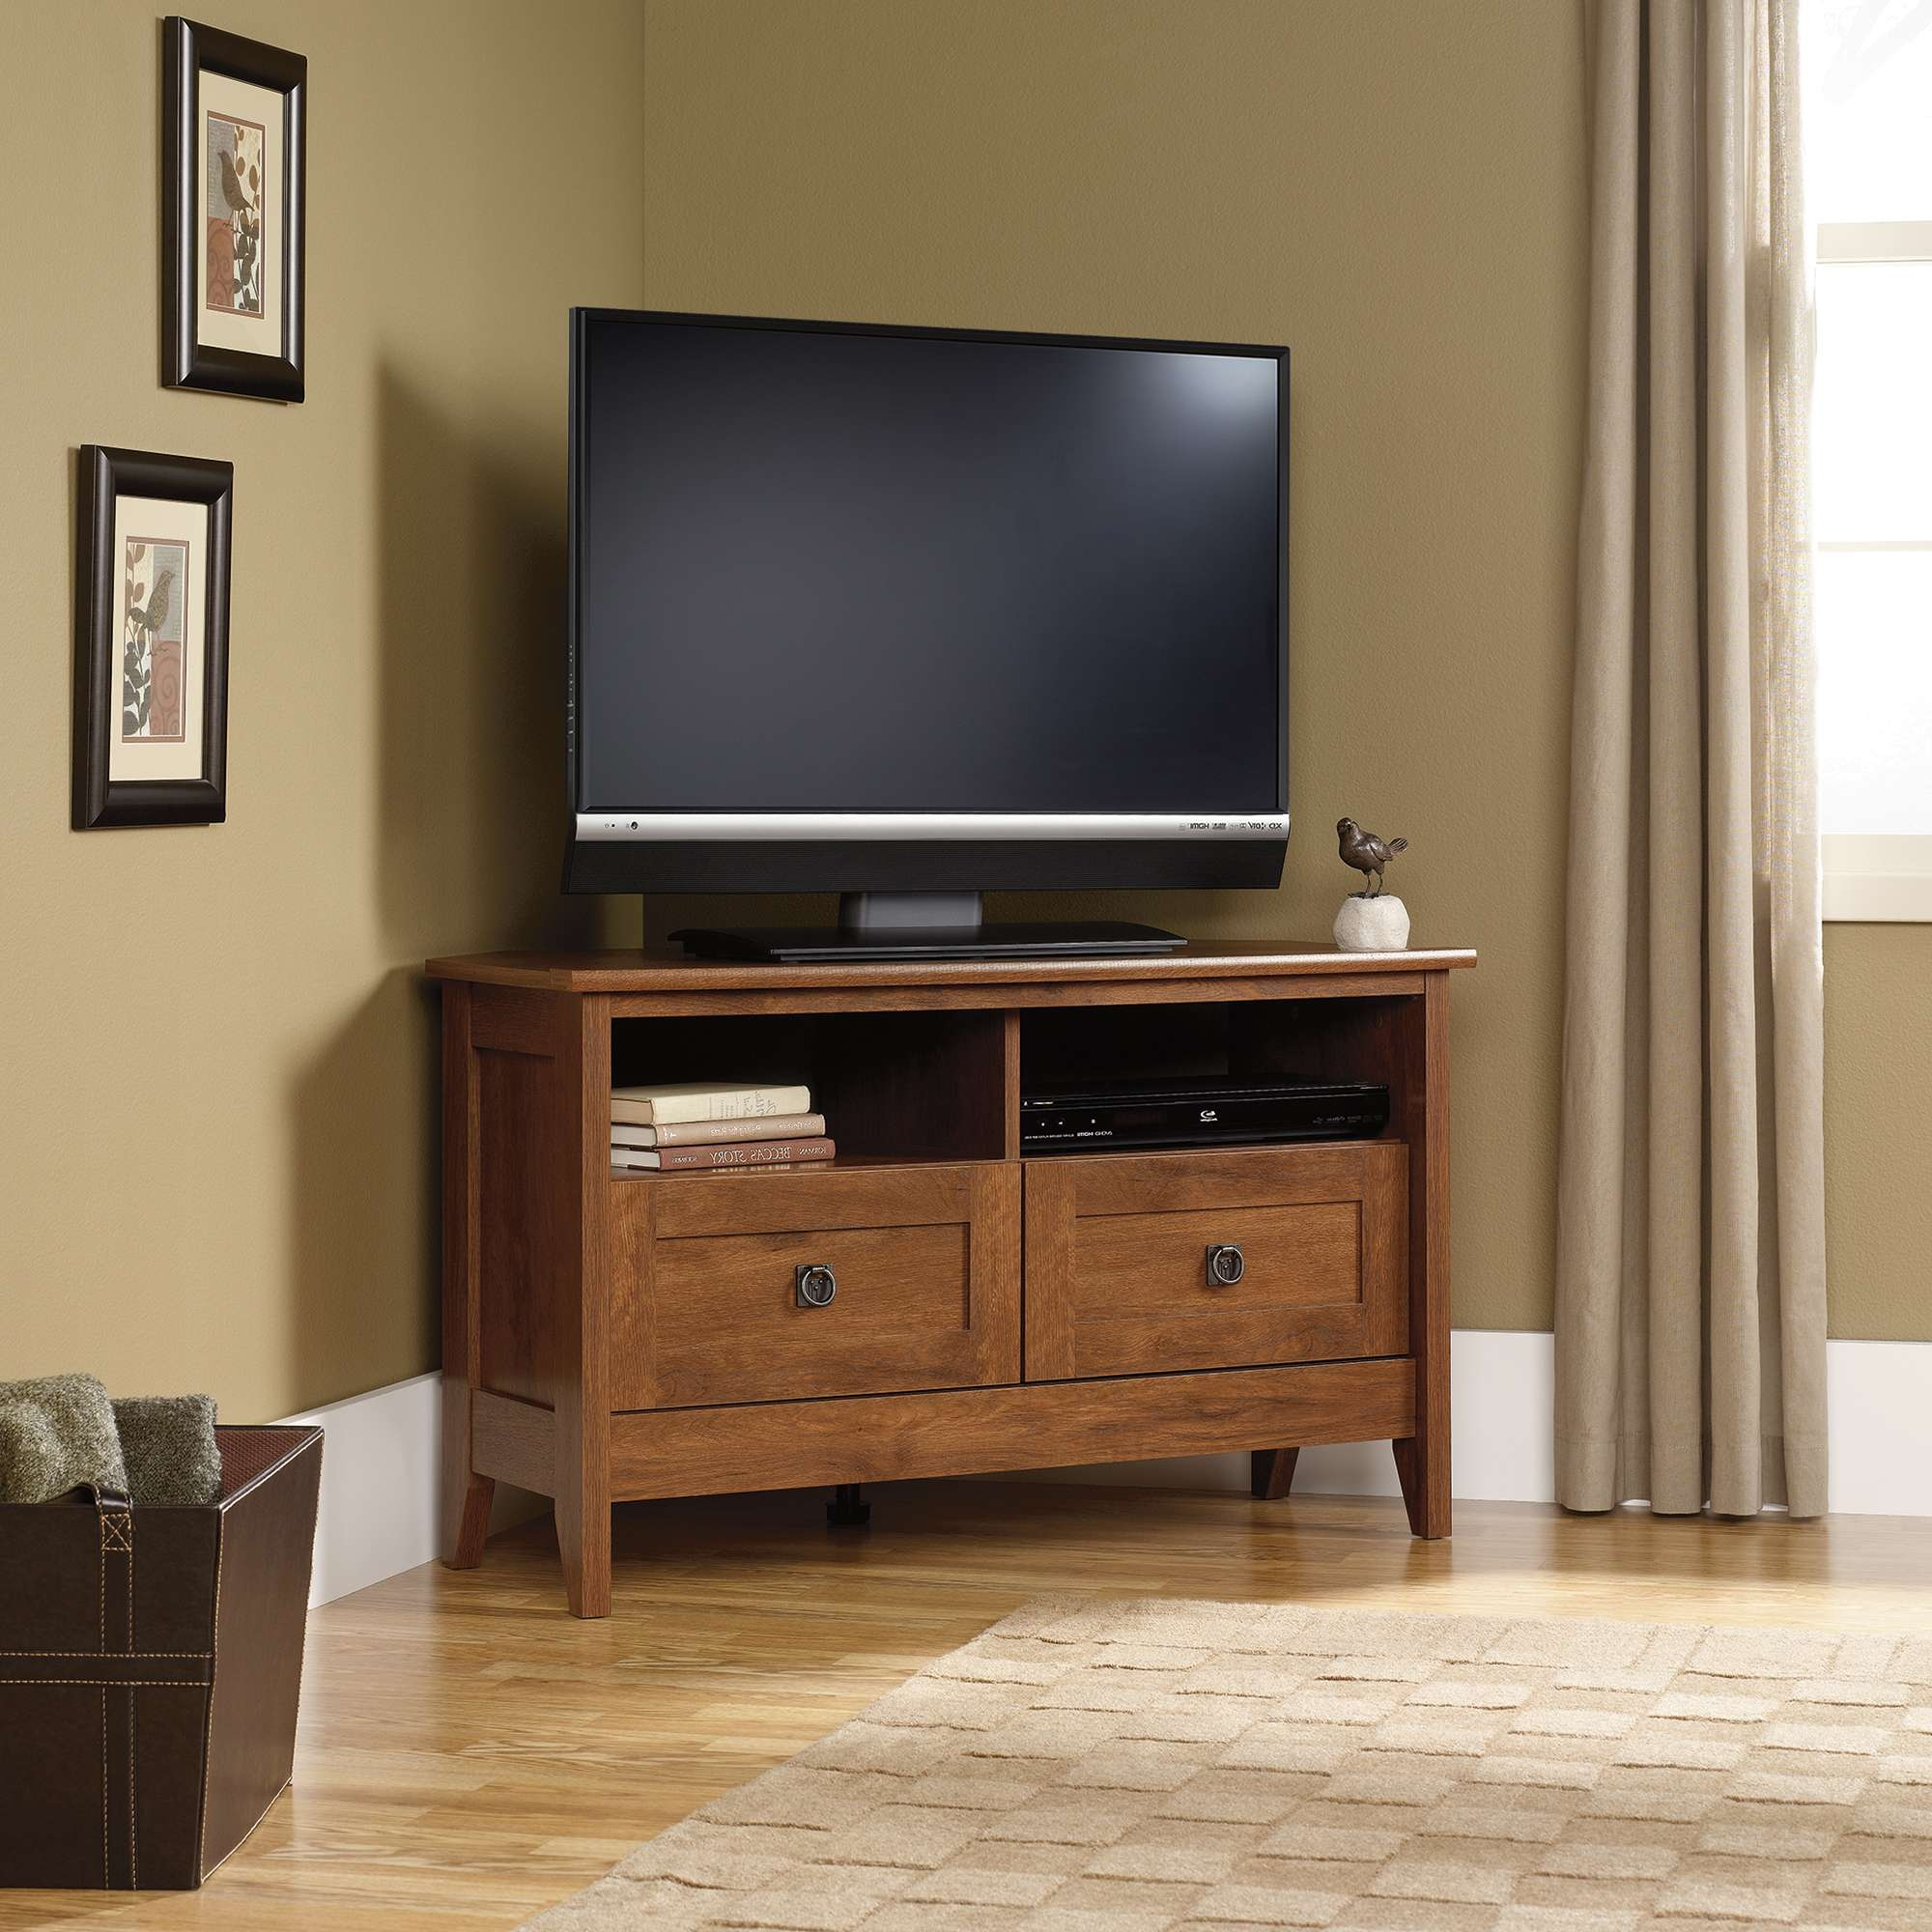 Sauder Select | Corner Tv Stand | 410627 | Sauder Pertaining To Corner Tv Stands With Drawers (View 4 of 15)